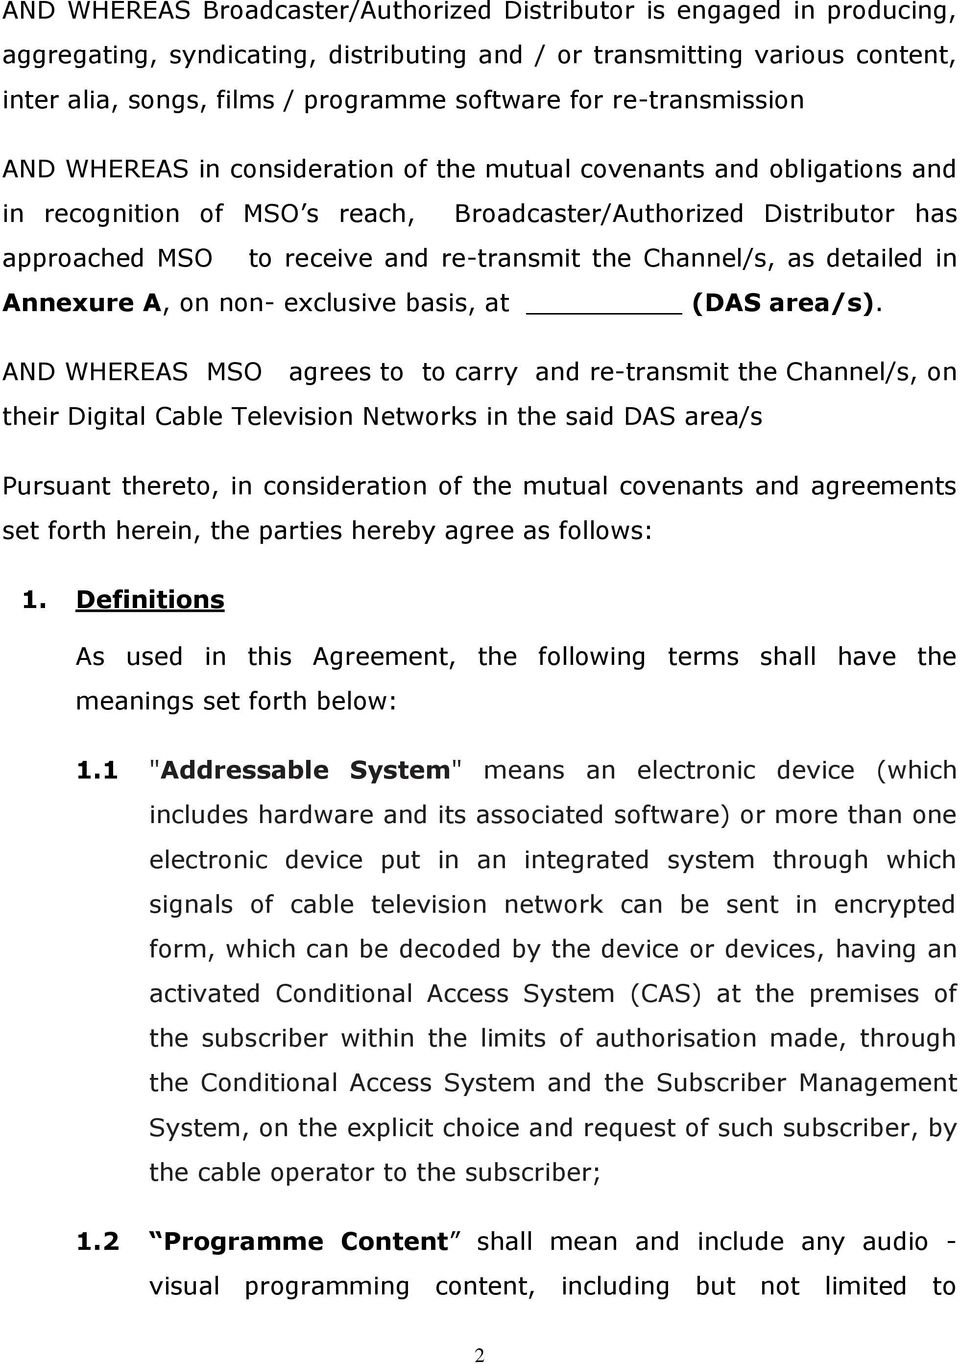 re-transmit the Channel/s, as detailed in Annexure A, on non- exclusive basis, at (DAS area/s).